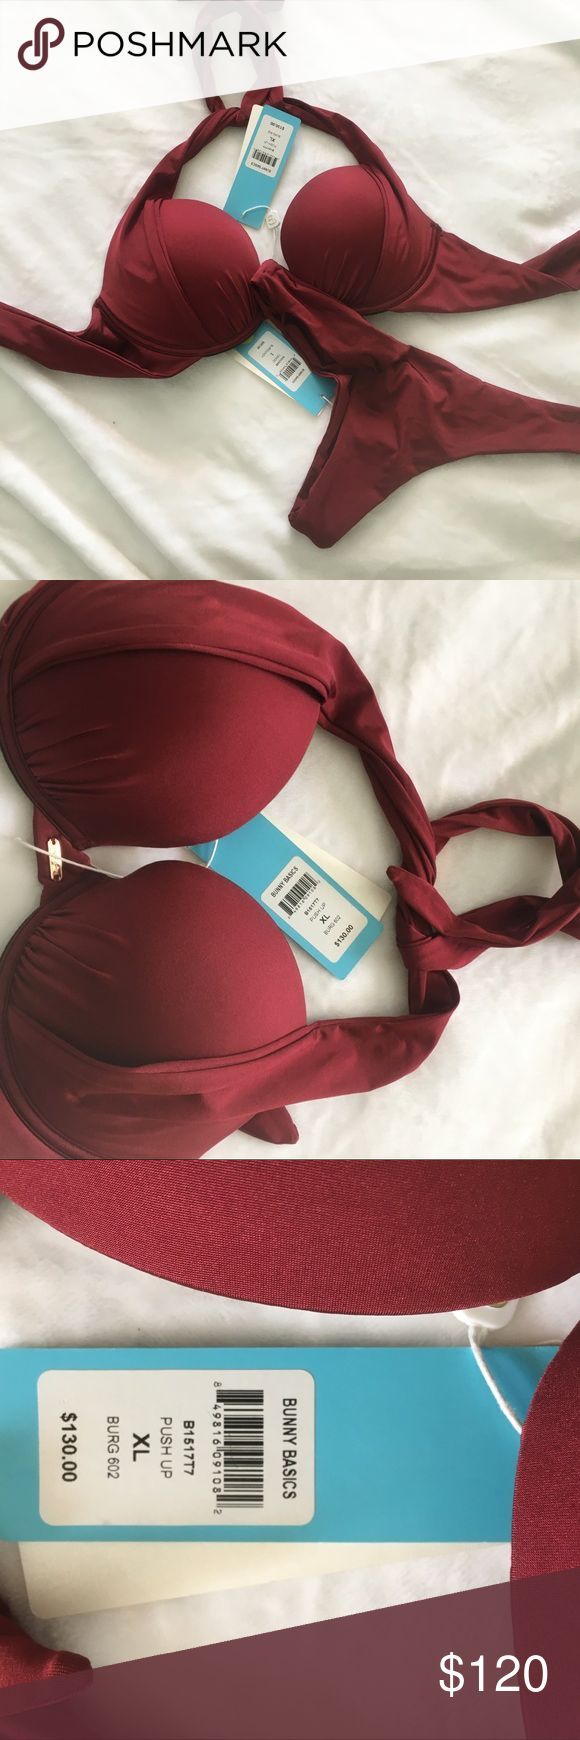 New Beach Bunny Bikini NEW WITH TAGS! Push Up Beach Bunny burgundy bikini! Fit is perfect! Adjustable top and large bottom! This is a steal! Originally $230 Beach Bunny Swim Bikinis